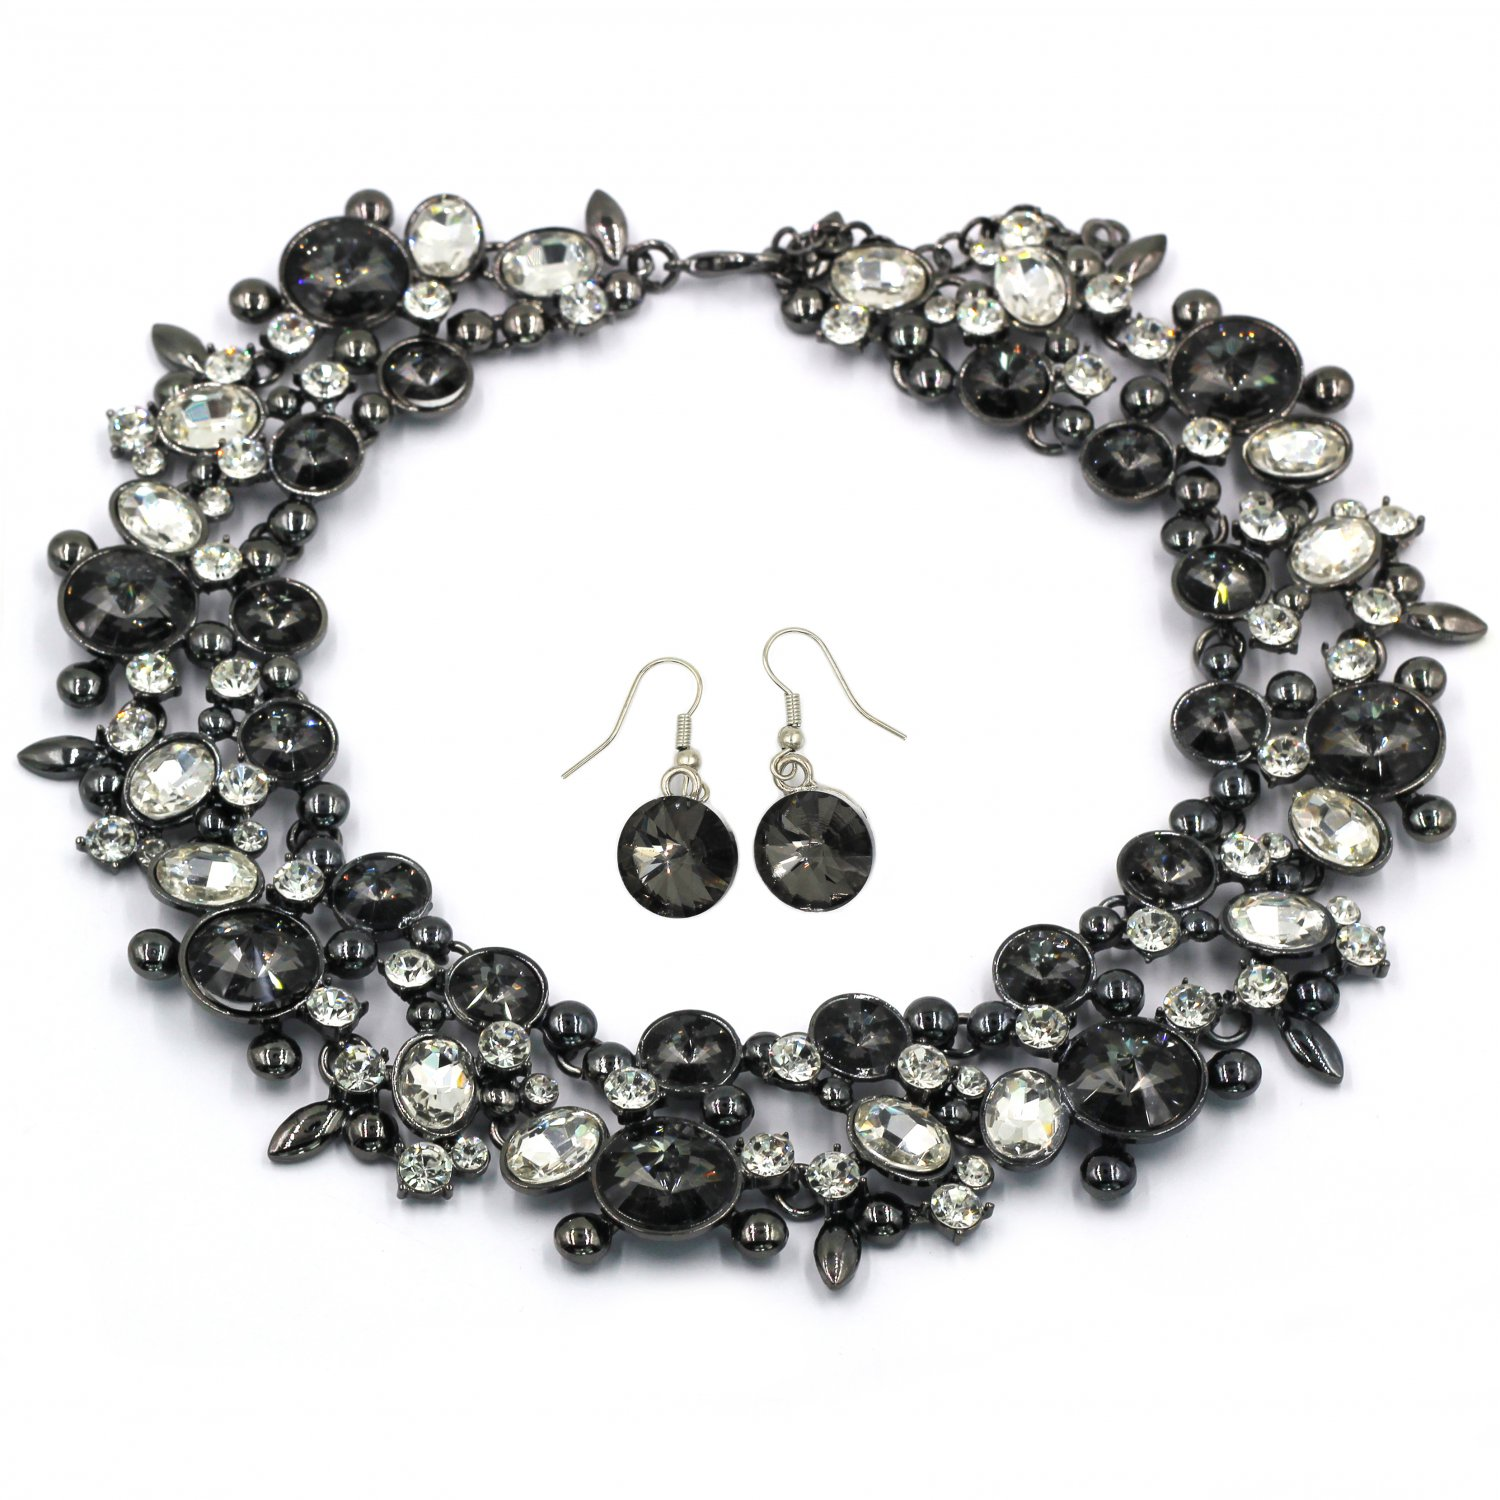 Elegant full black crystal necklace earrings set